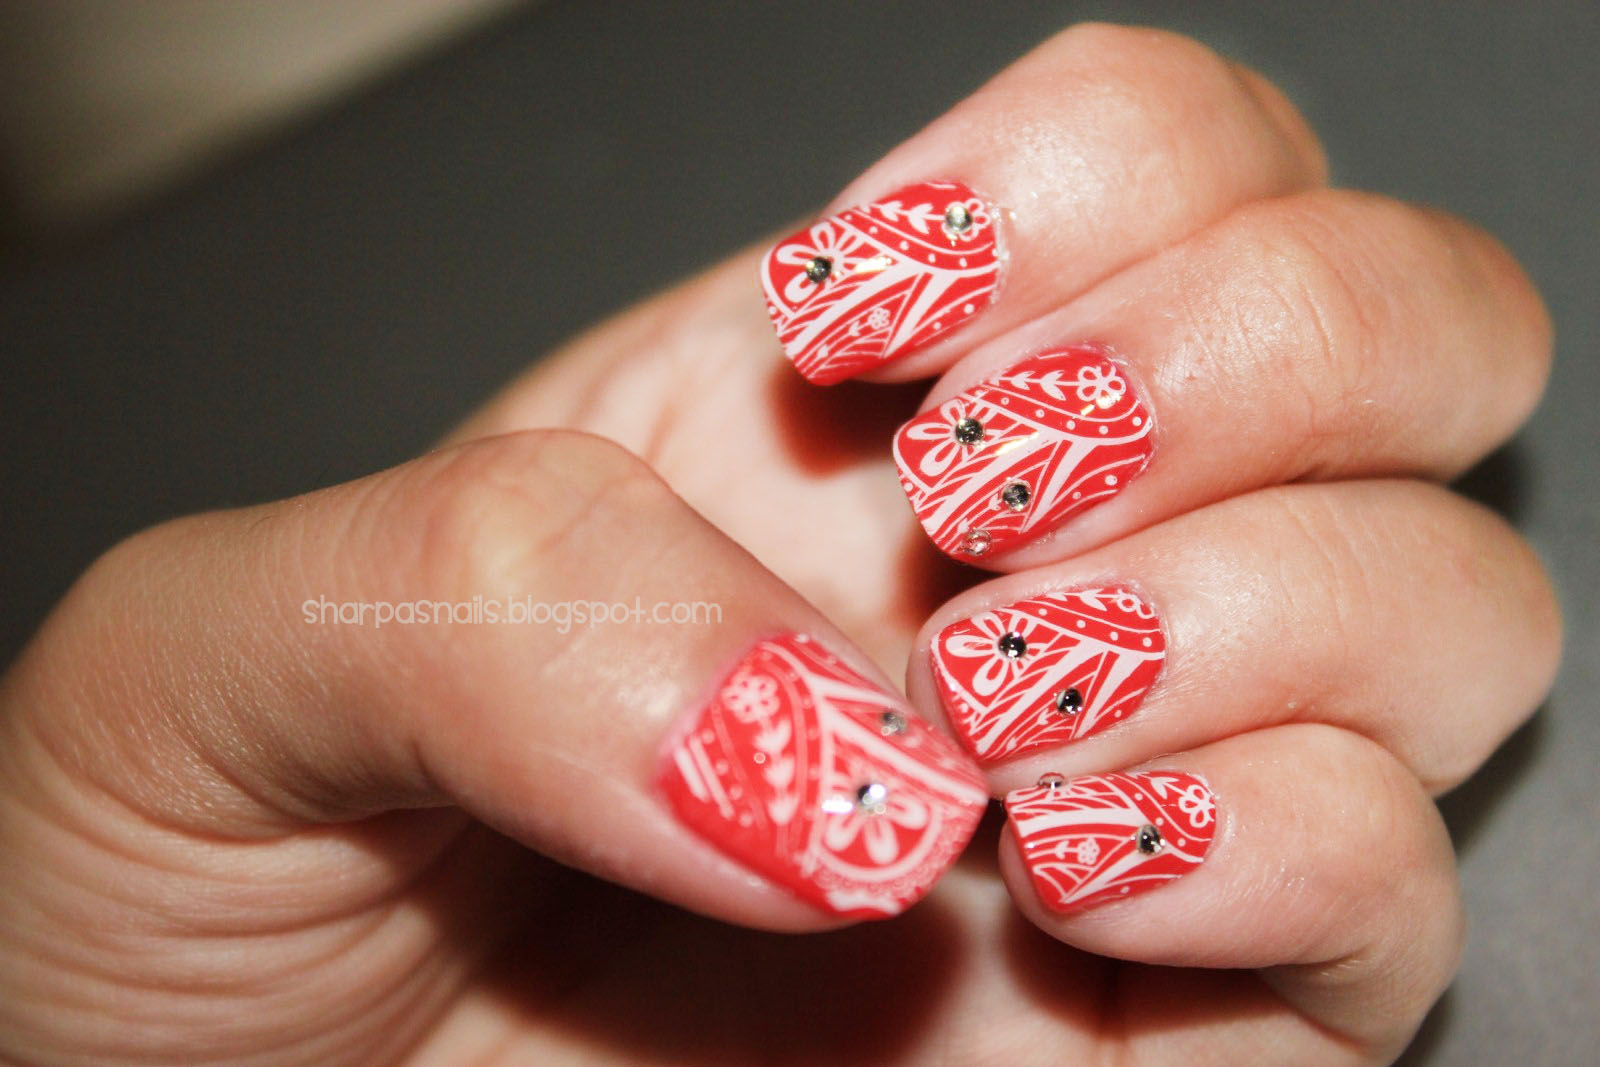 This Nail Art Is Quite Easy To Do As You Can See It Possible All Fingernails On Both Hands Just Need Practice Most Of The Stamping